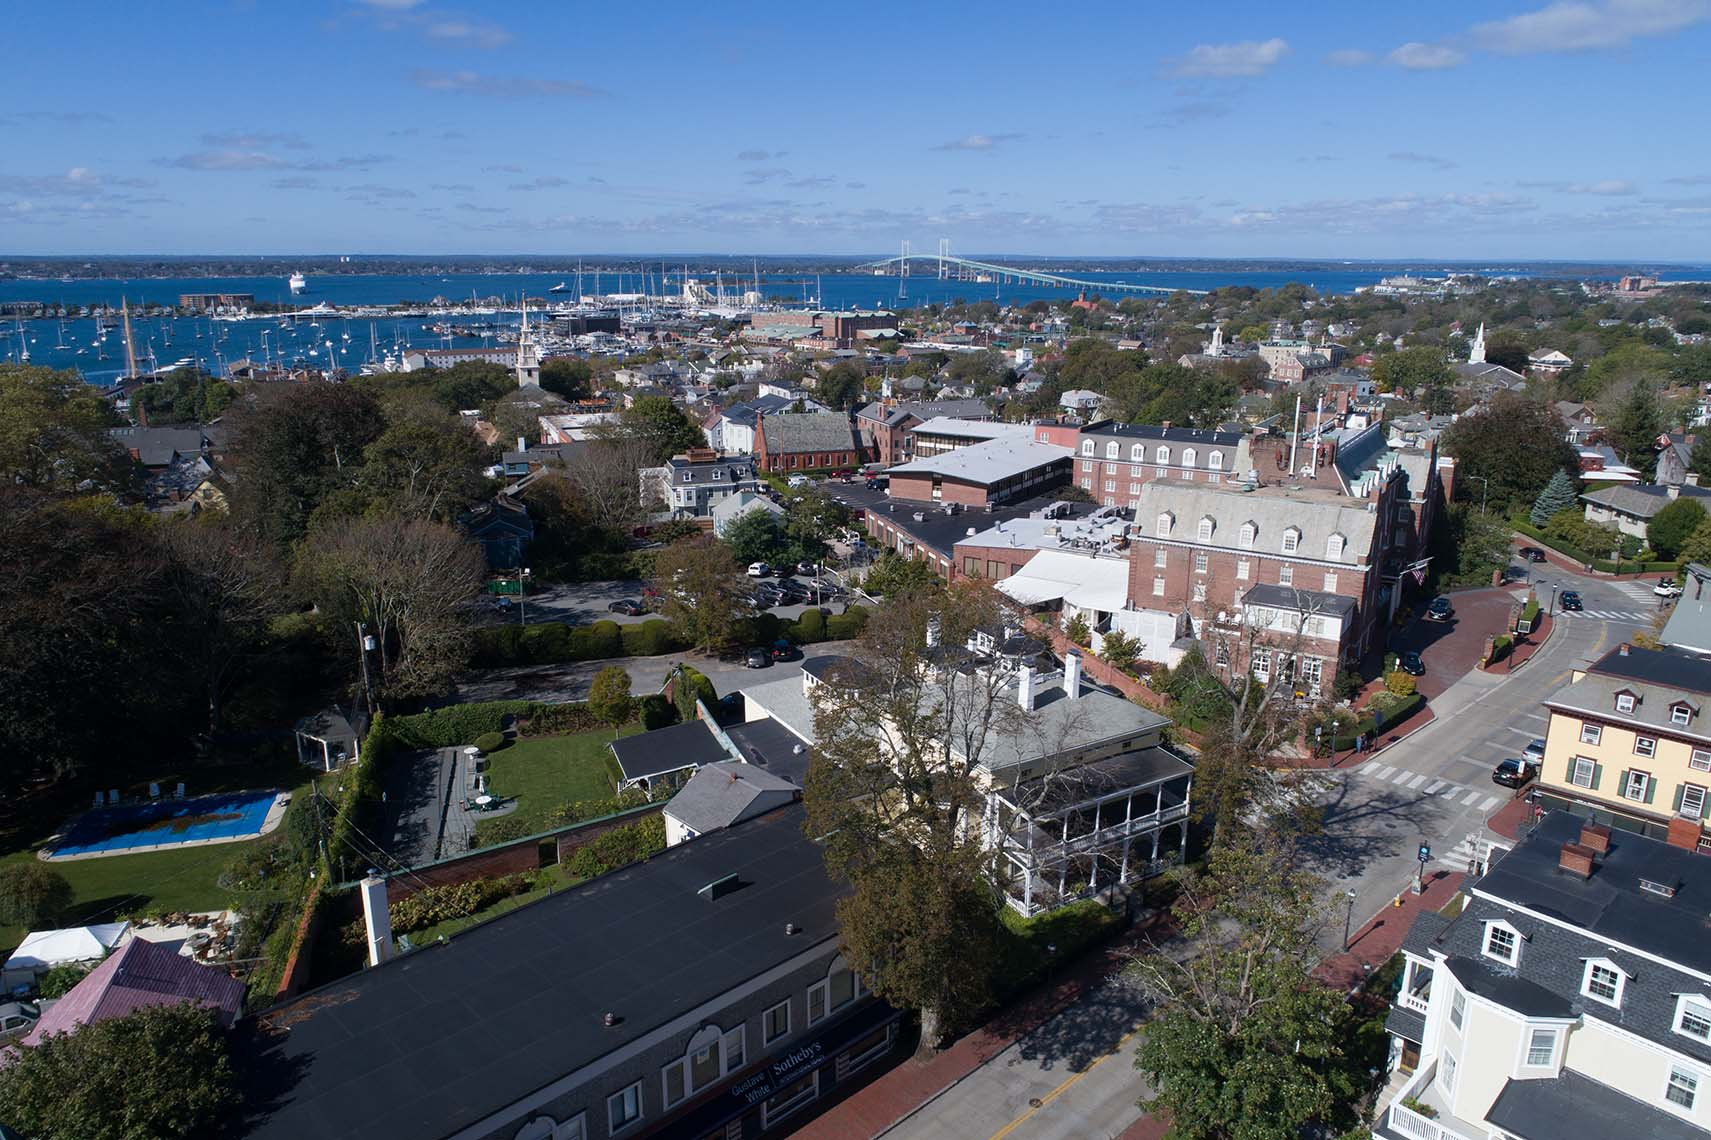 Bellevue Avenue Newport Rhode Island with the Harbor in the Background